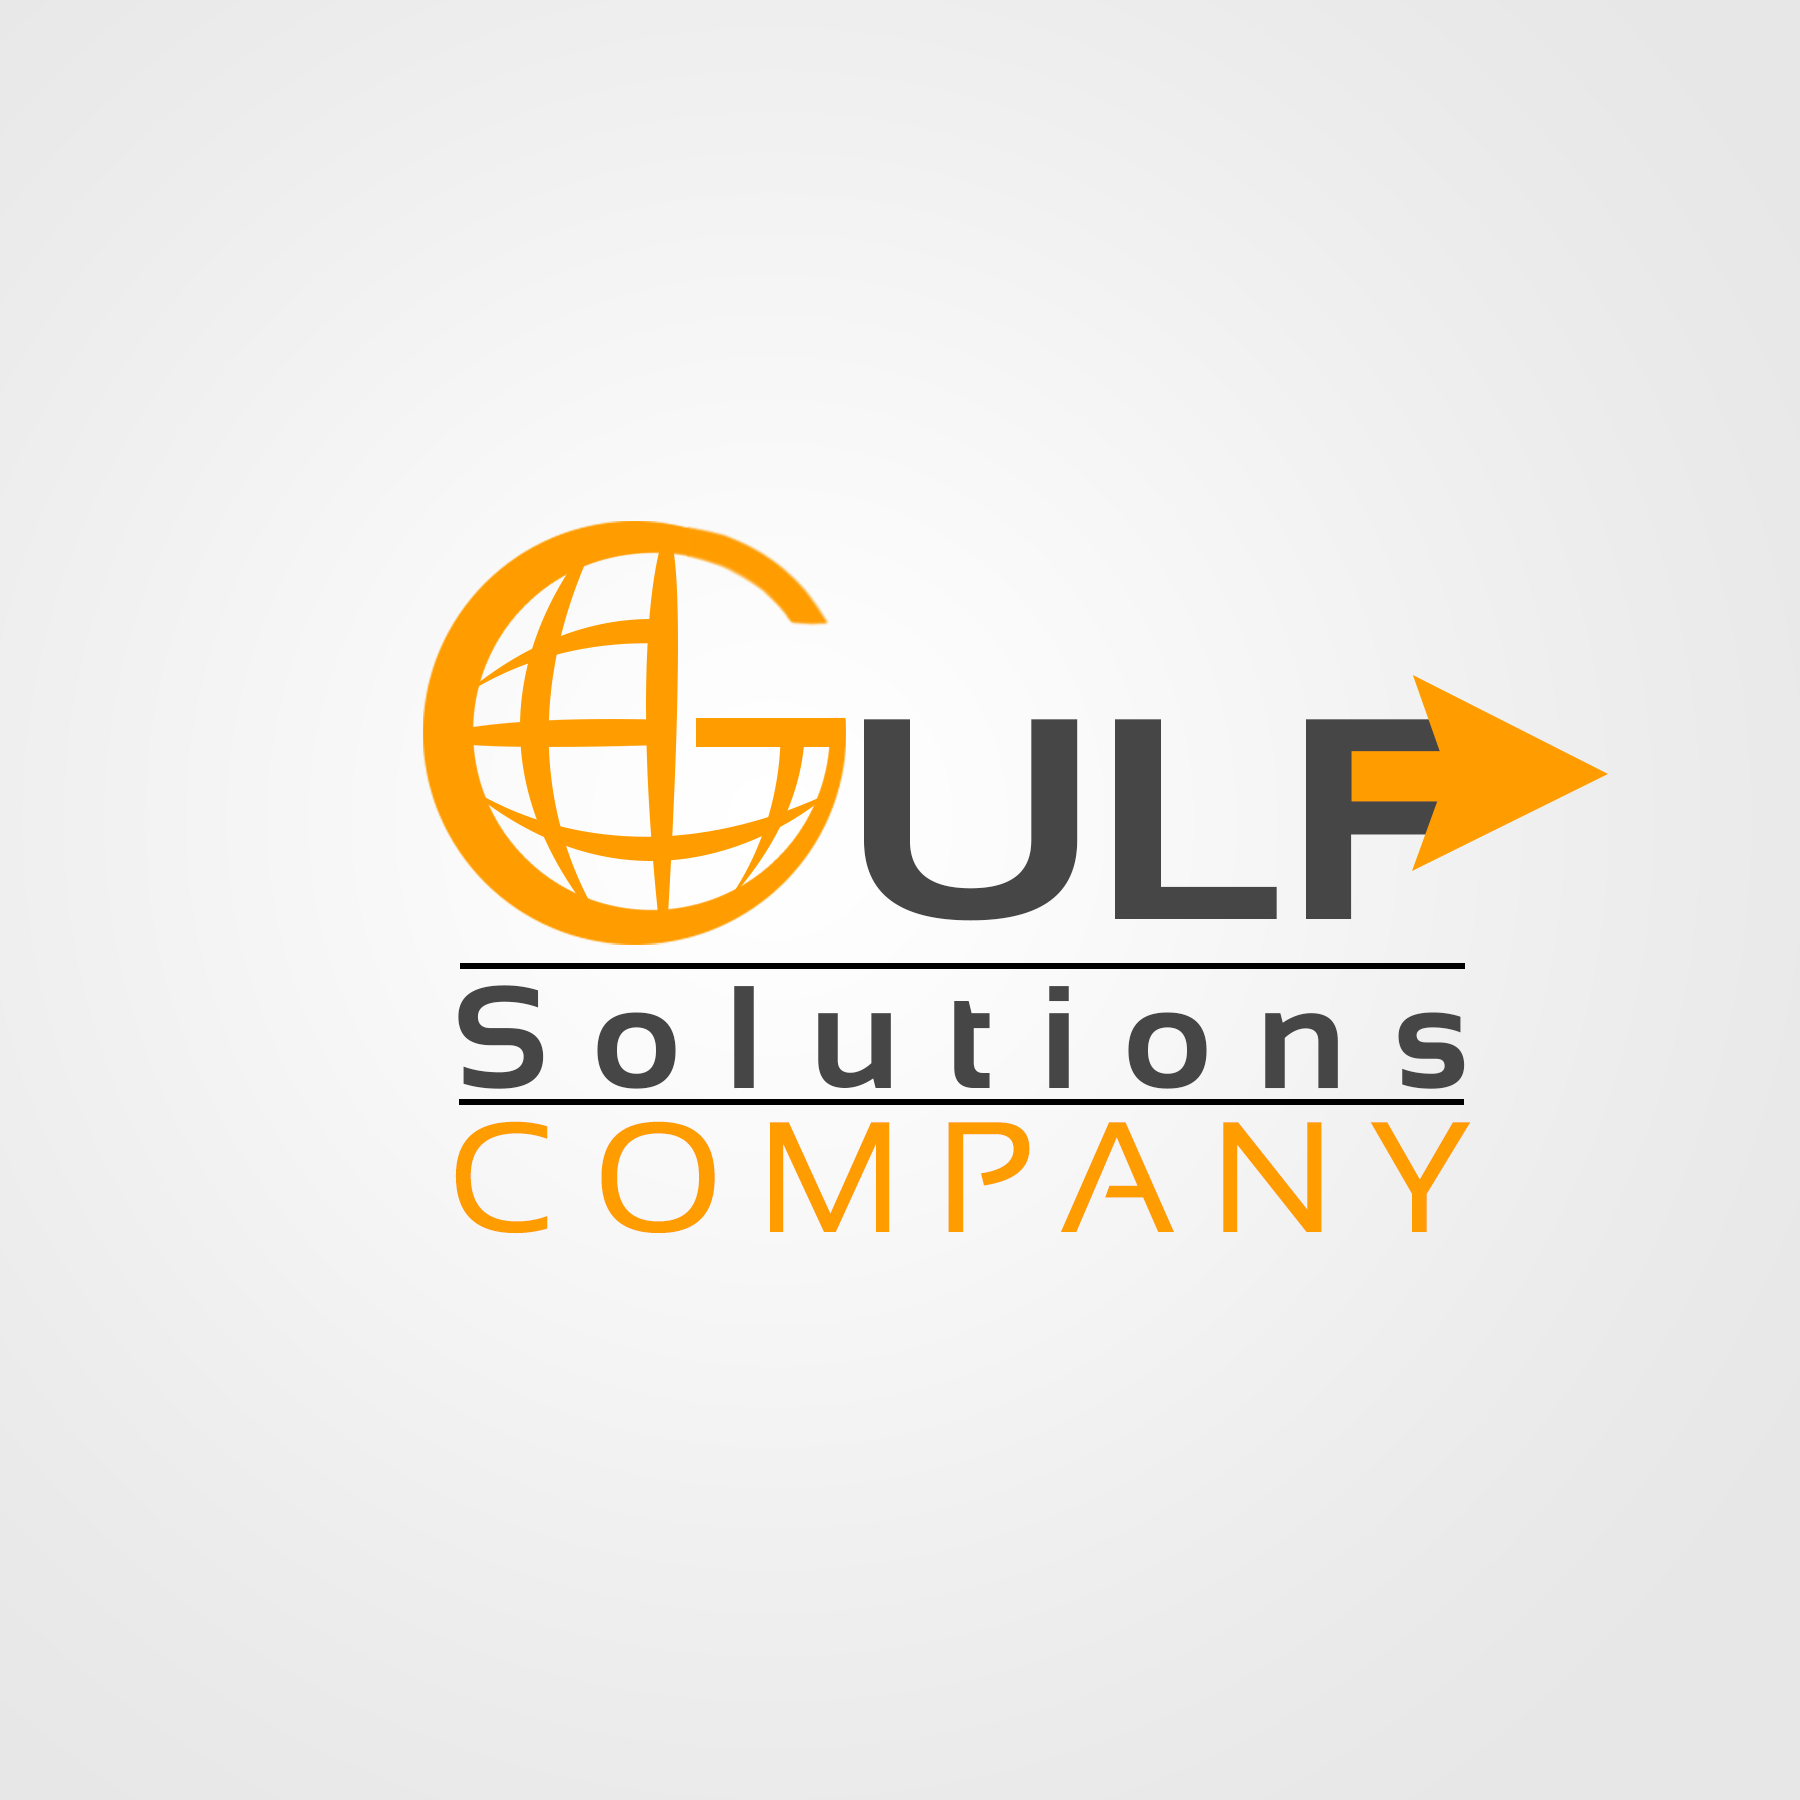 Logo Design by Lemuel Arvin Tanzo - Entry No. 109 in the Logo Design Contest New Logo Design for Gulf solutions company.